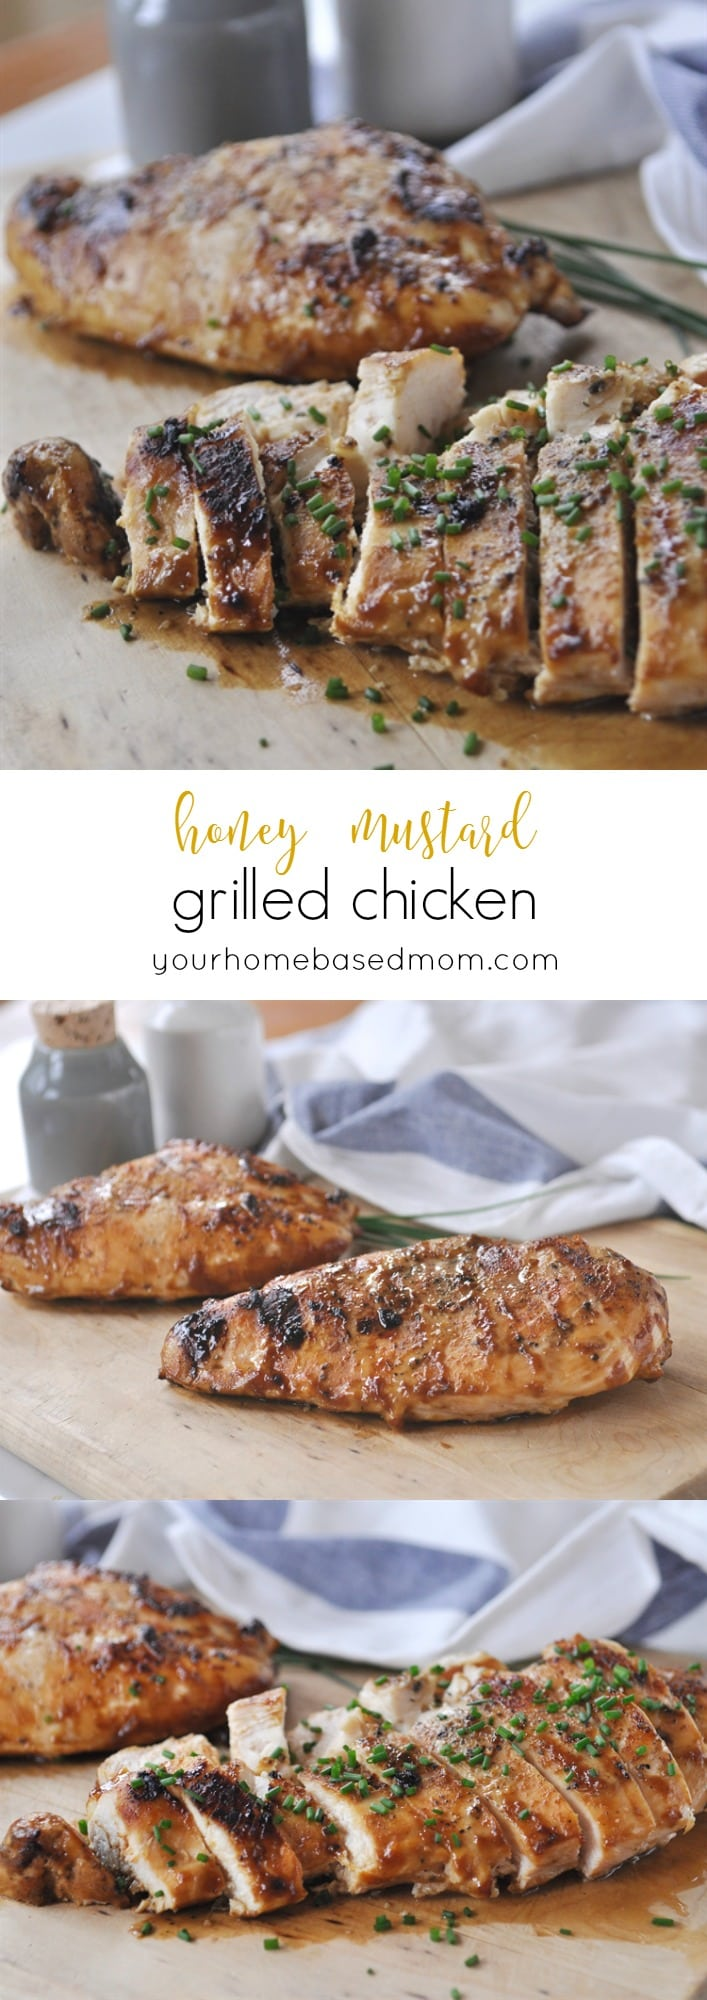 Honey Mustard Grilled Chicken @yourhomebasedmom.com